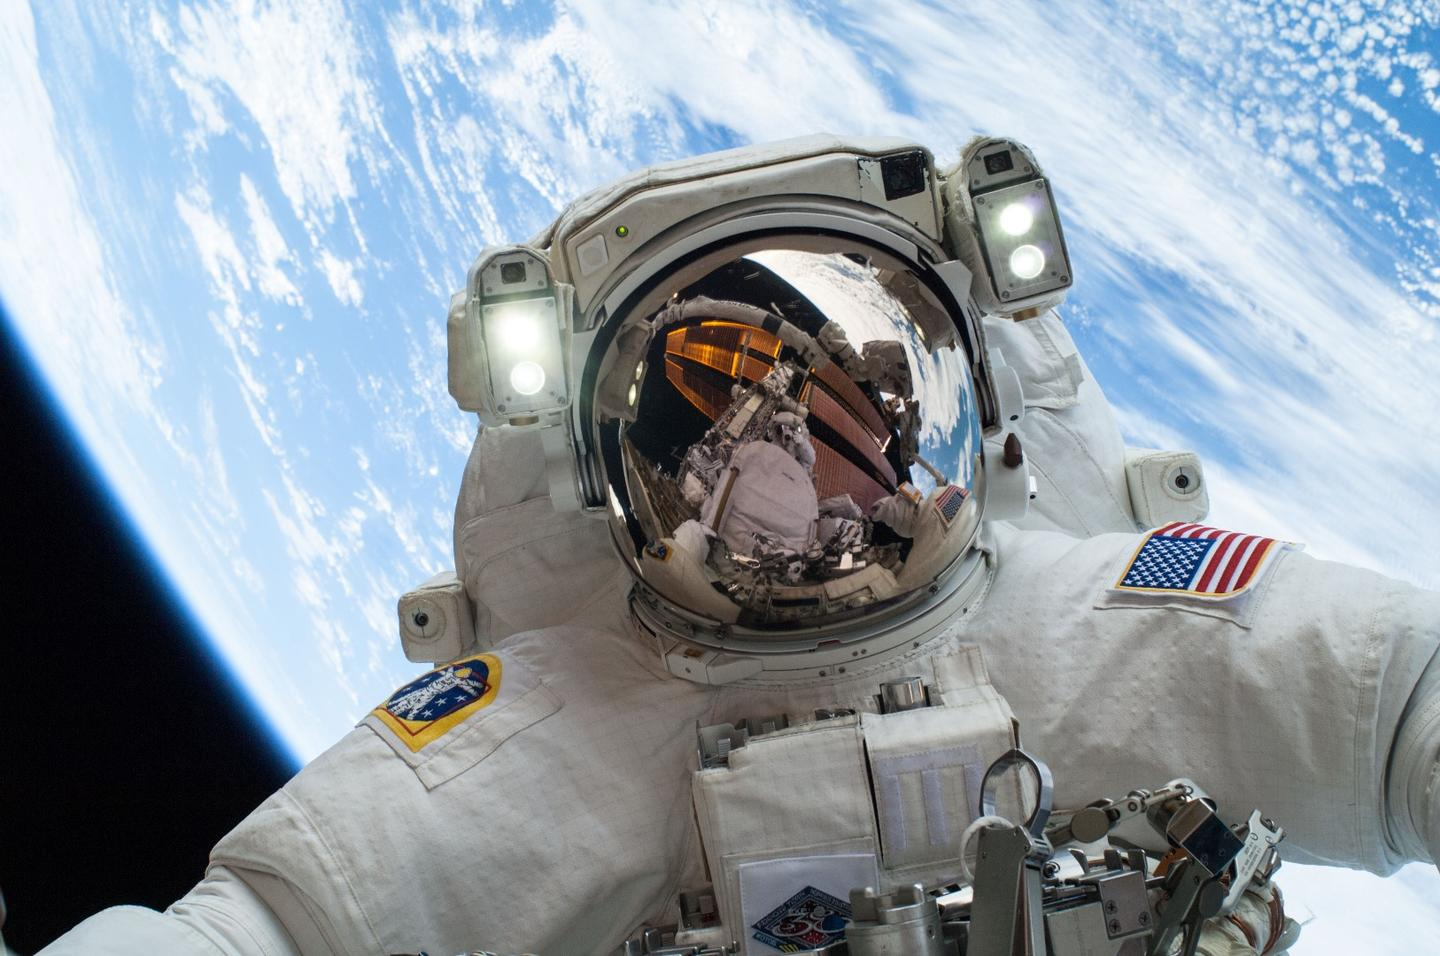 NASA has put out the call for new astronauts